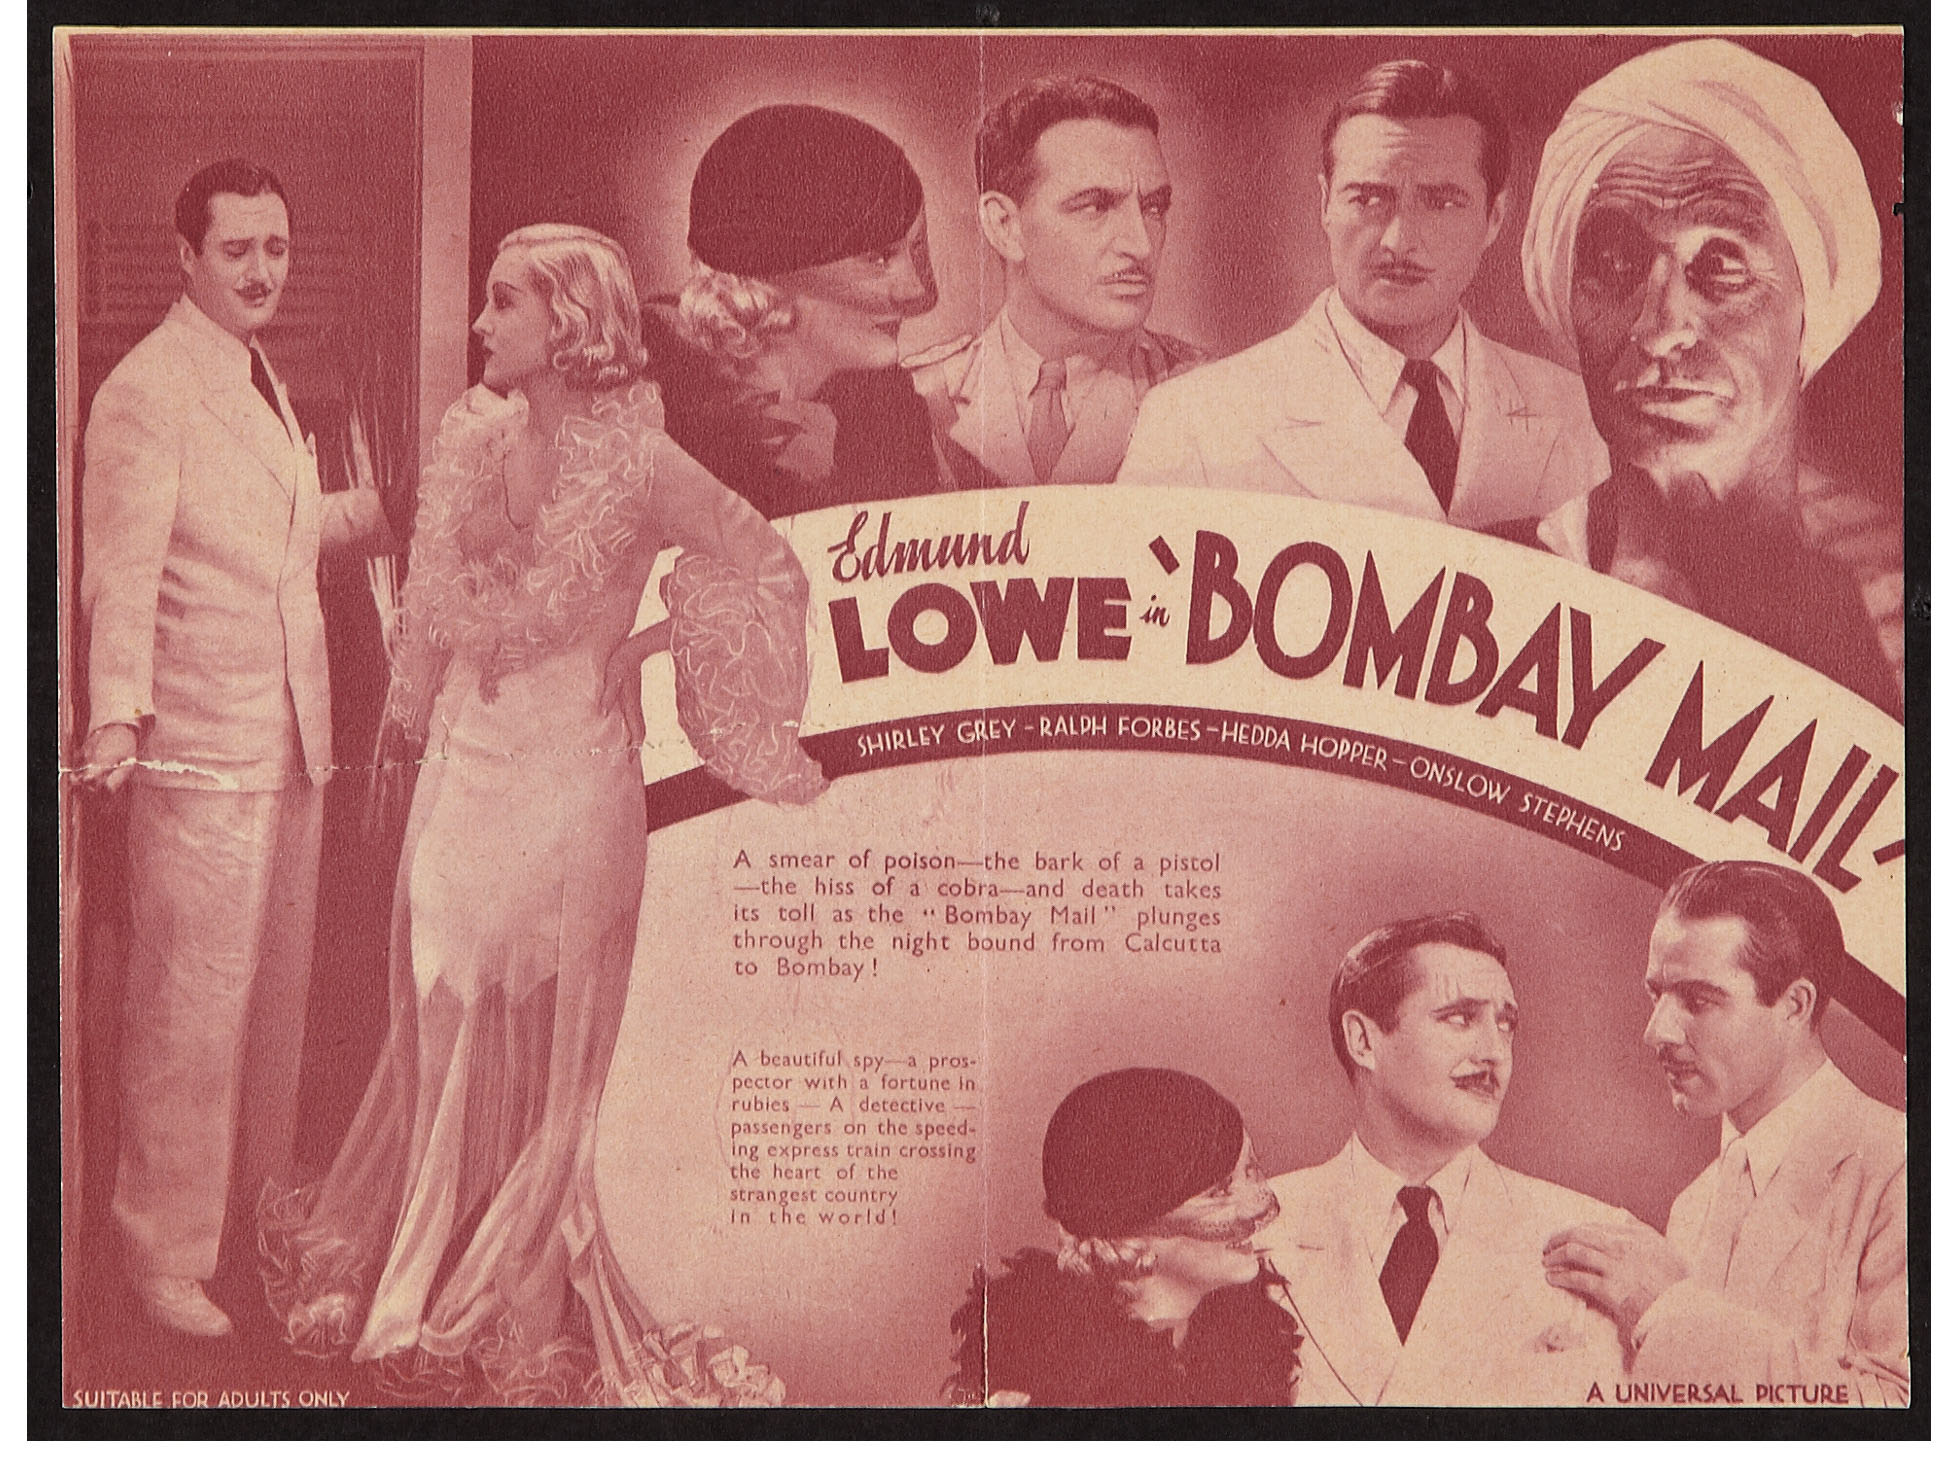 Ralph Forbes, Shirley Grey, Brandon Hurst, and Edmund Lowe in Bombay Mail (1934)